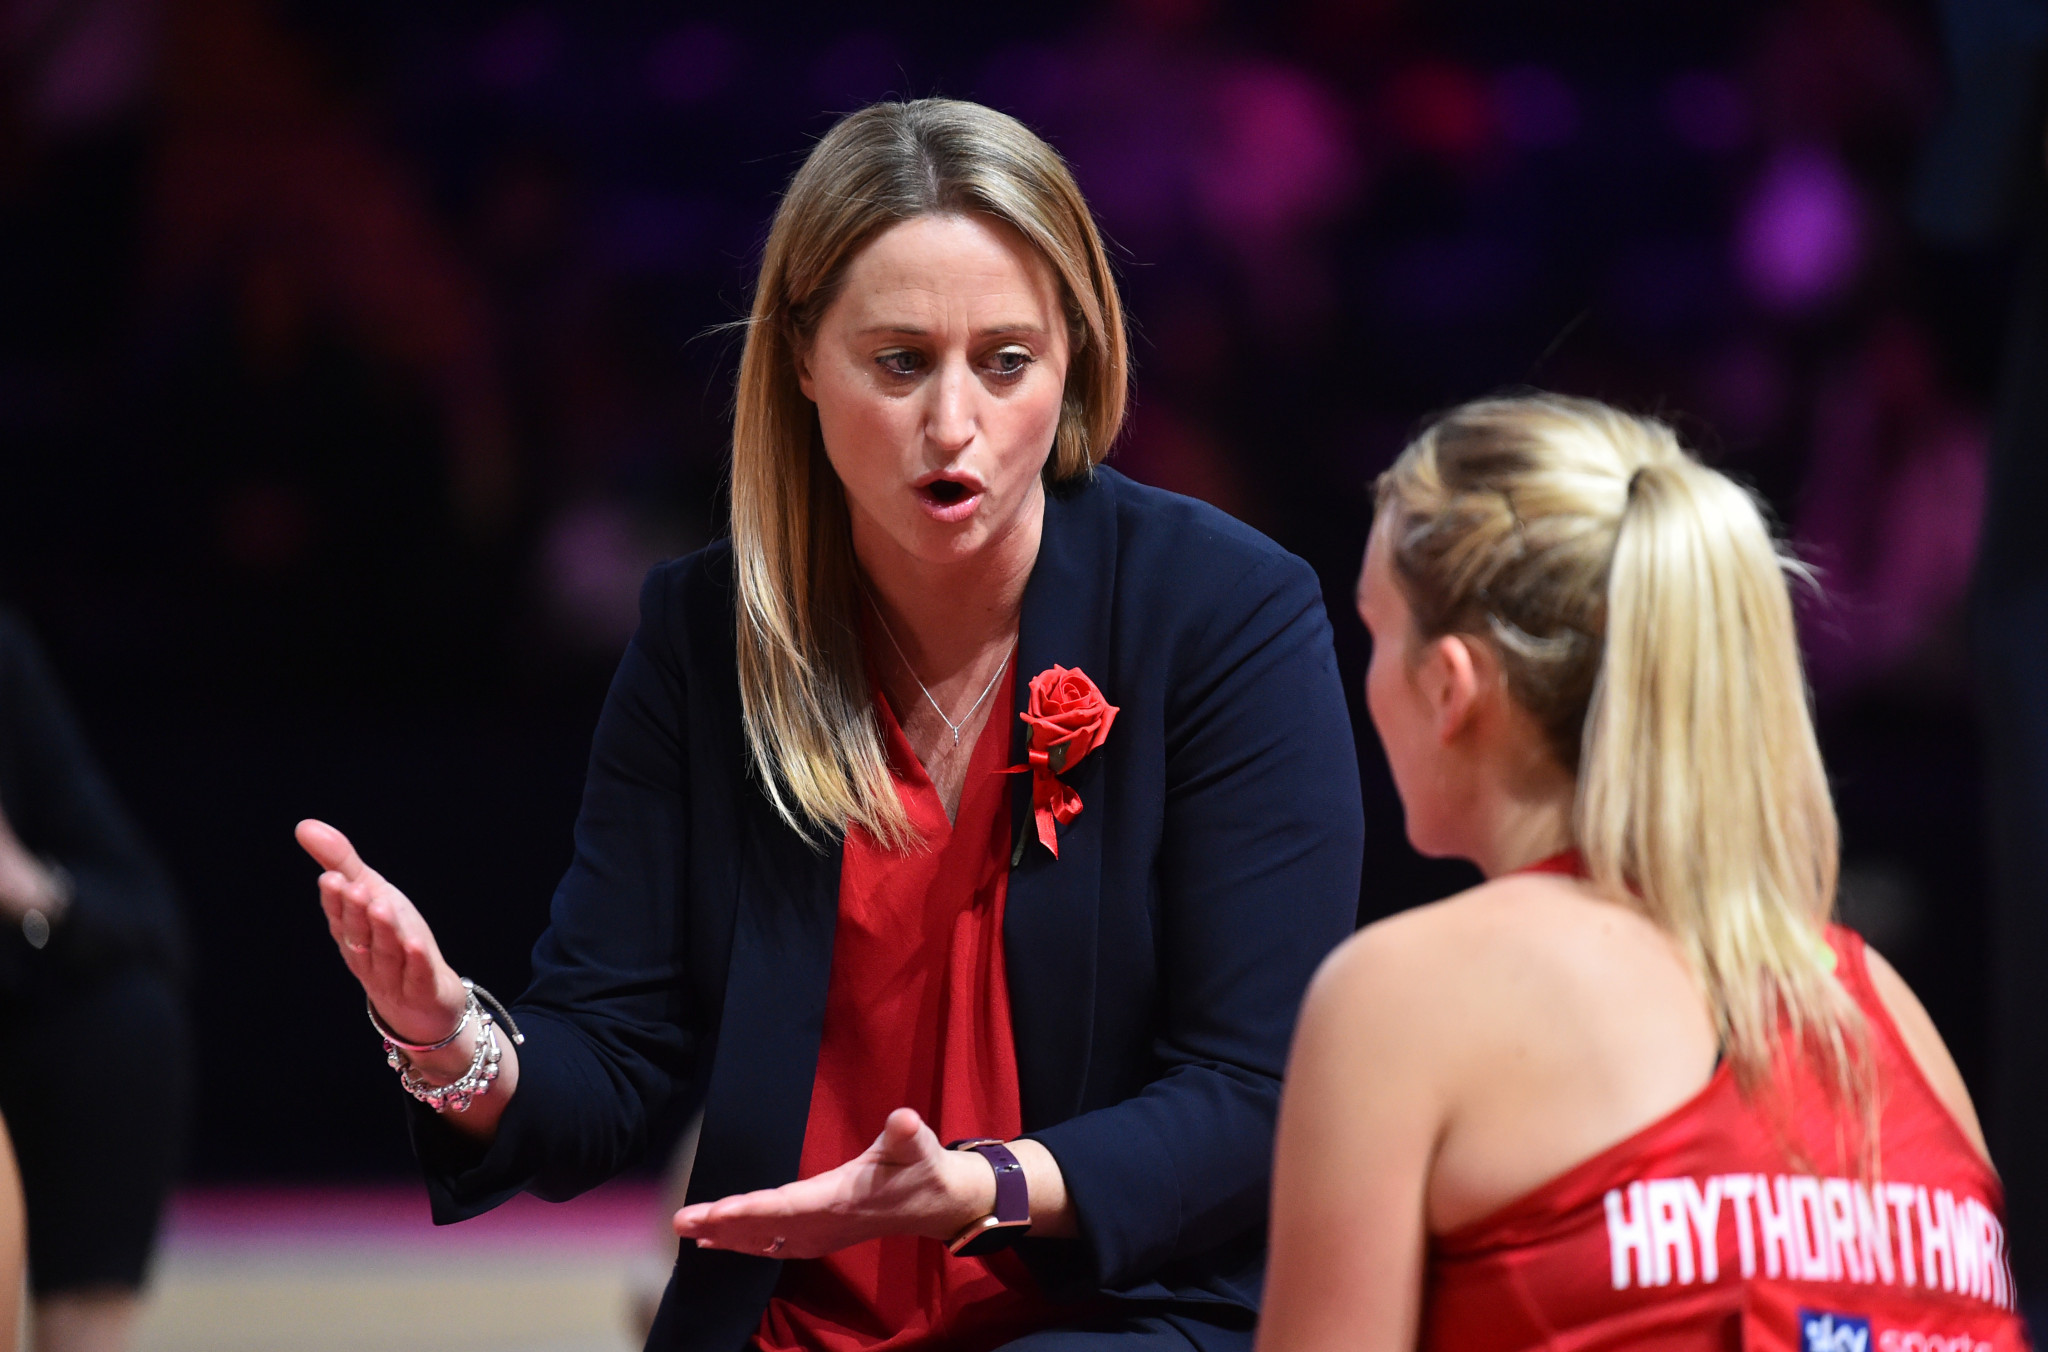 Jess Thirlby giving instructions to Natalie Panagarry during a Vitality Netball Nations Cup 2020 match between England and New Zealand ©Getty Images